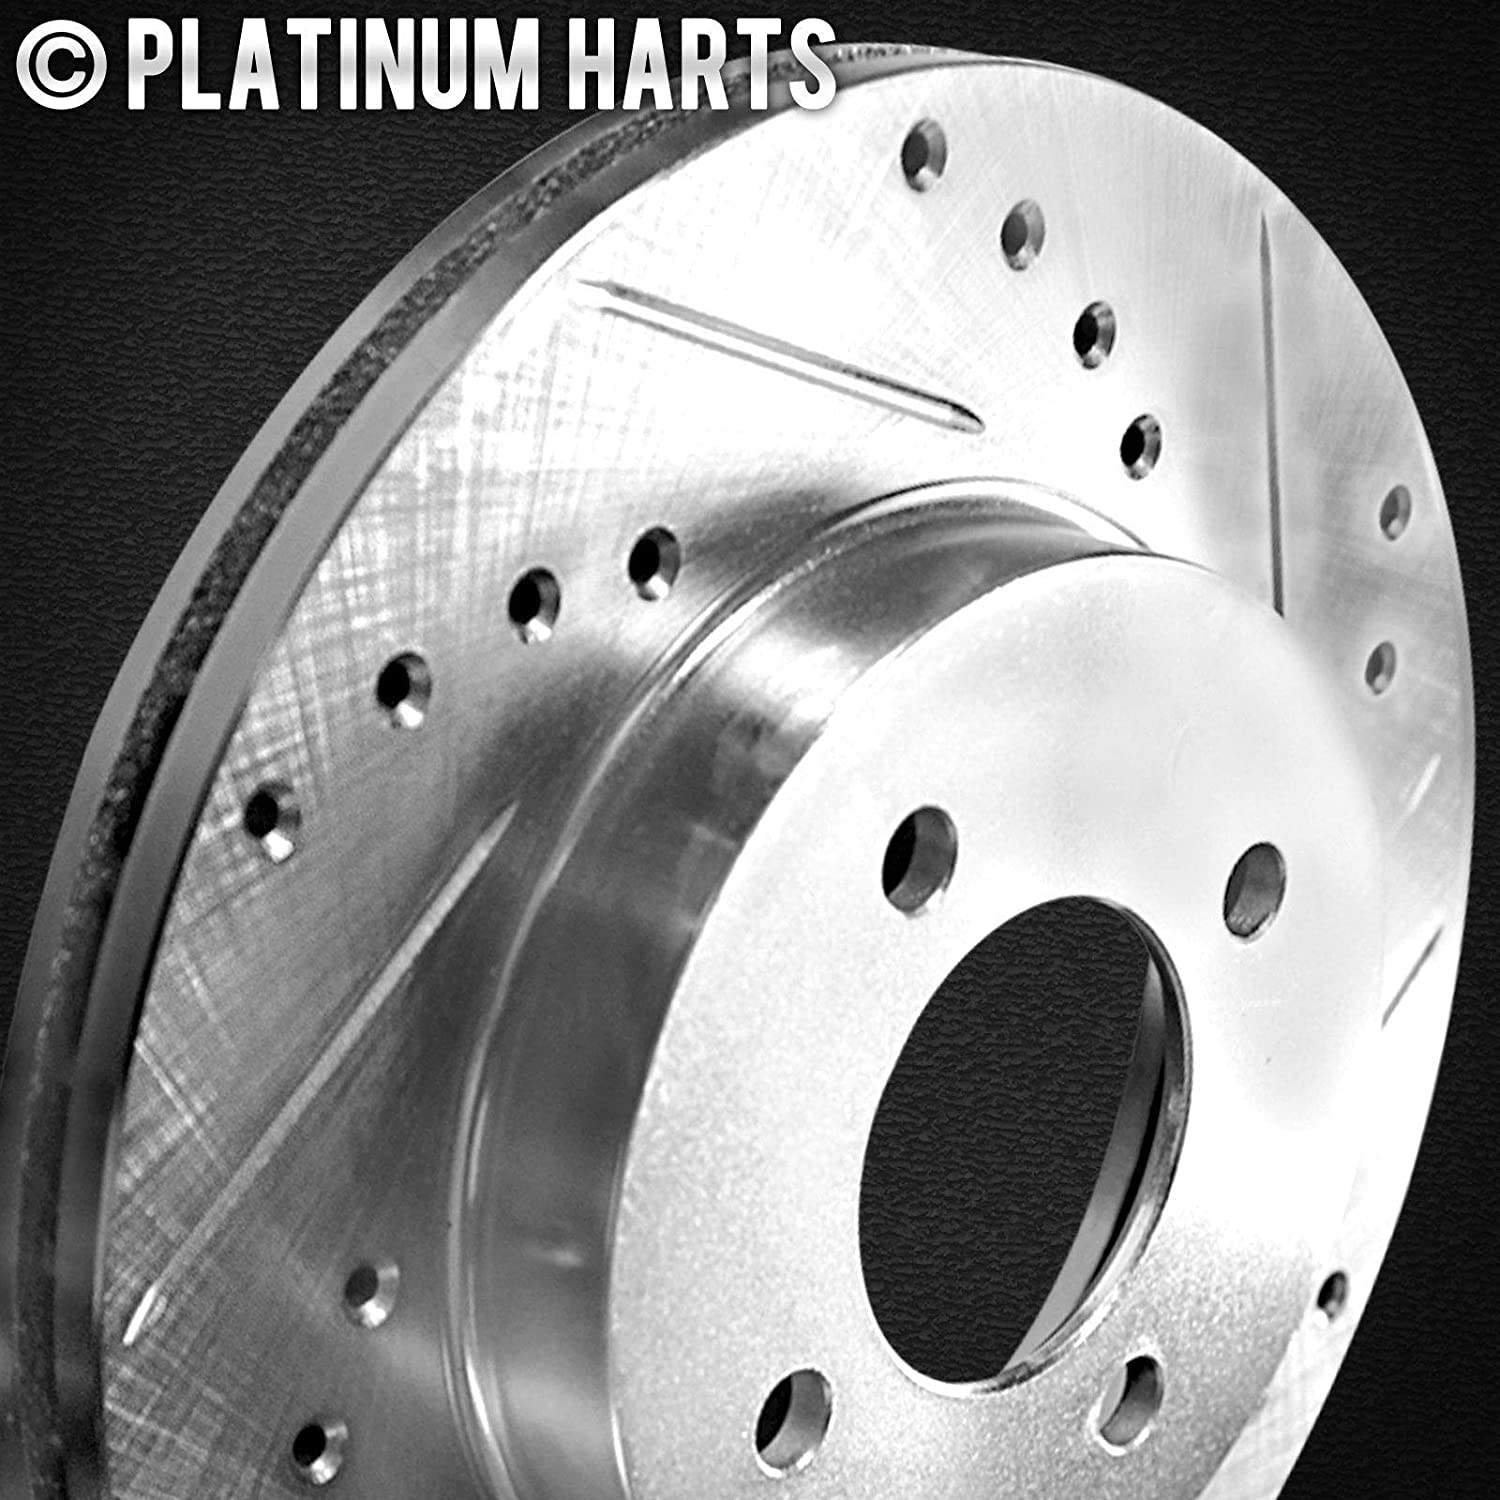 REAR POWER PERFORMANCE DRILLED SLOTTED PLATED BRAKE DISC ROTORS P34431